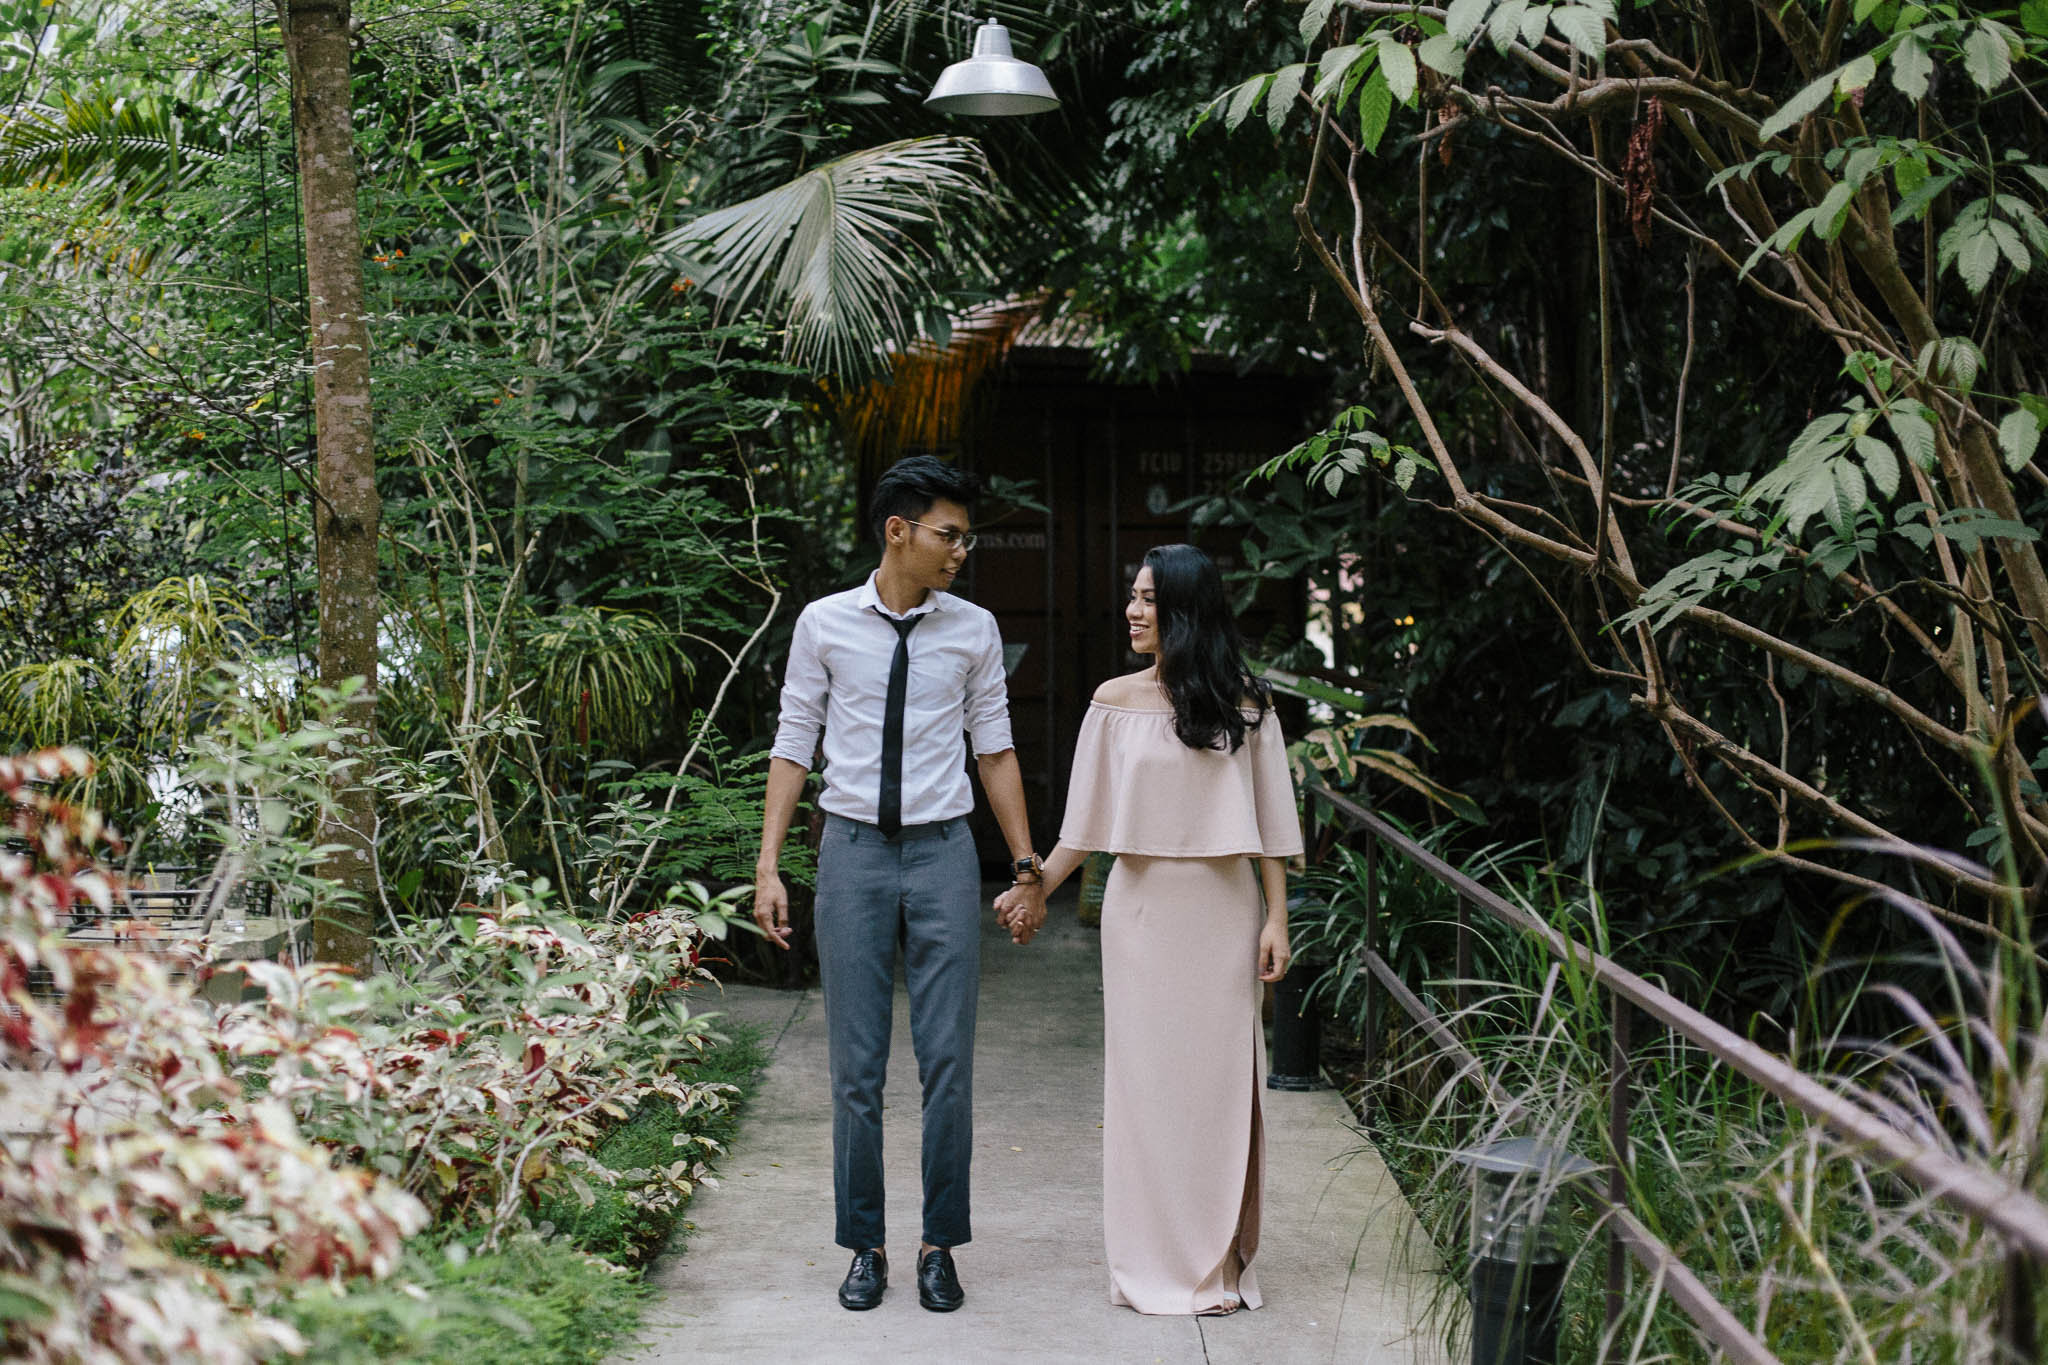 singapore-wedding-photographer-malay-travel-adli-tashah-40.jpg